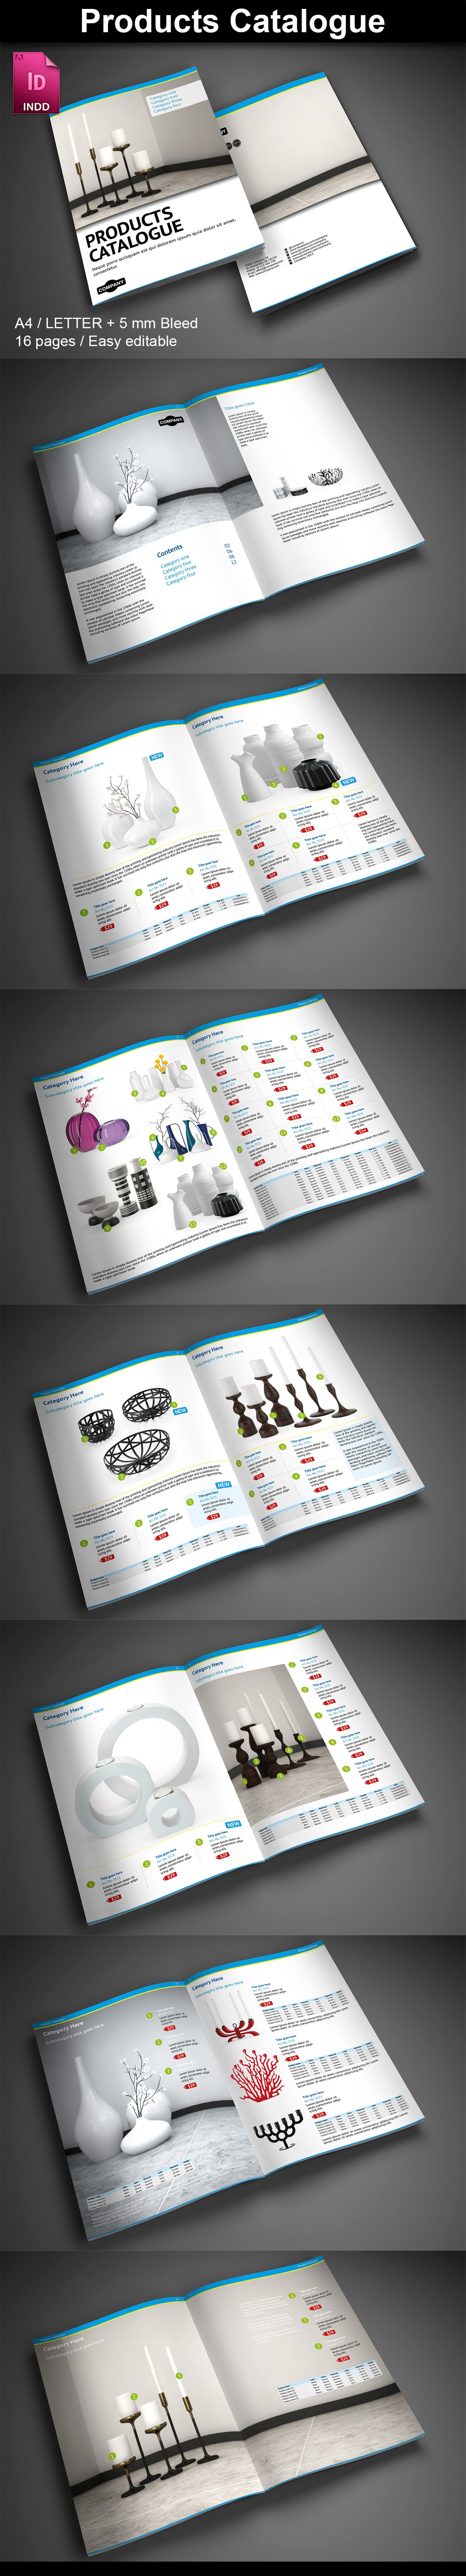 15  InDesign Product Catalogs - just $19 - 08 Products8 ImagePreview